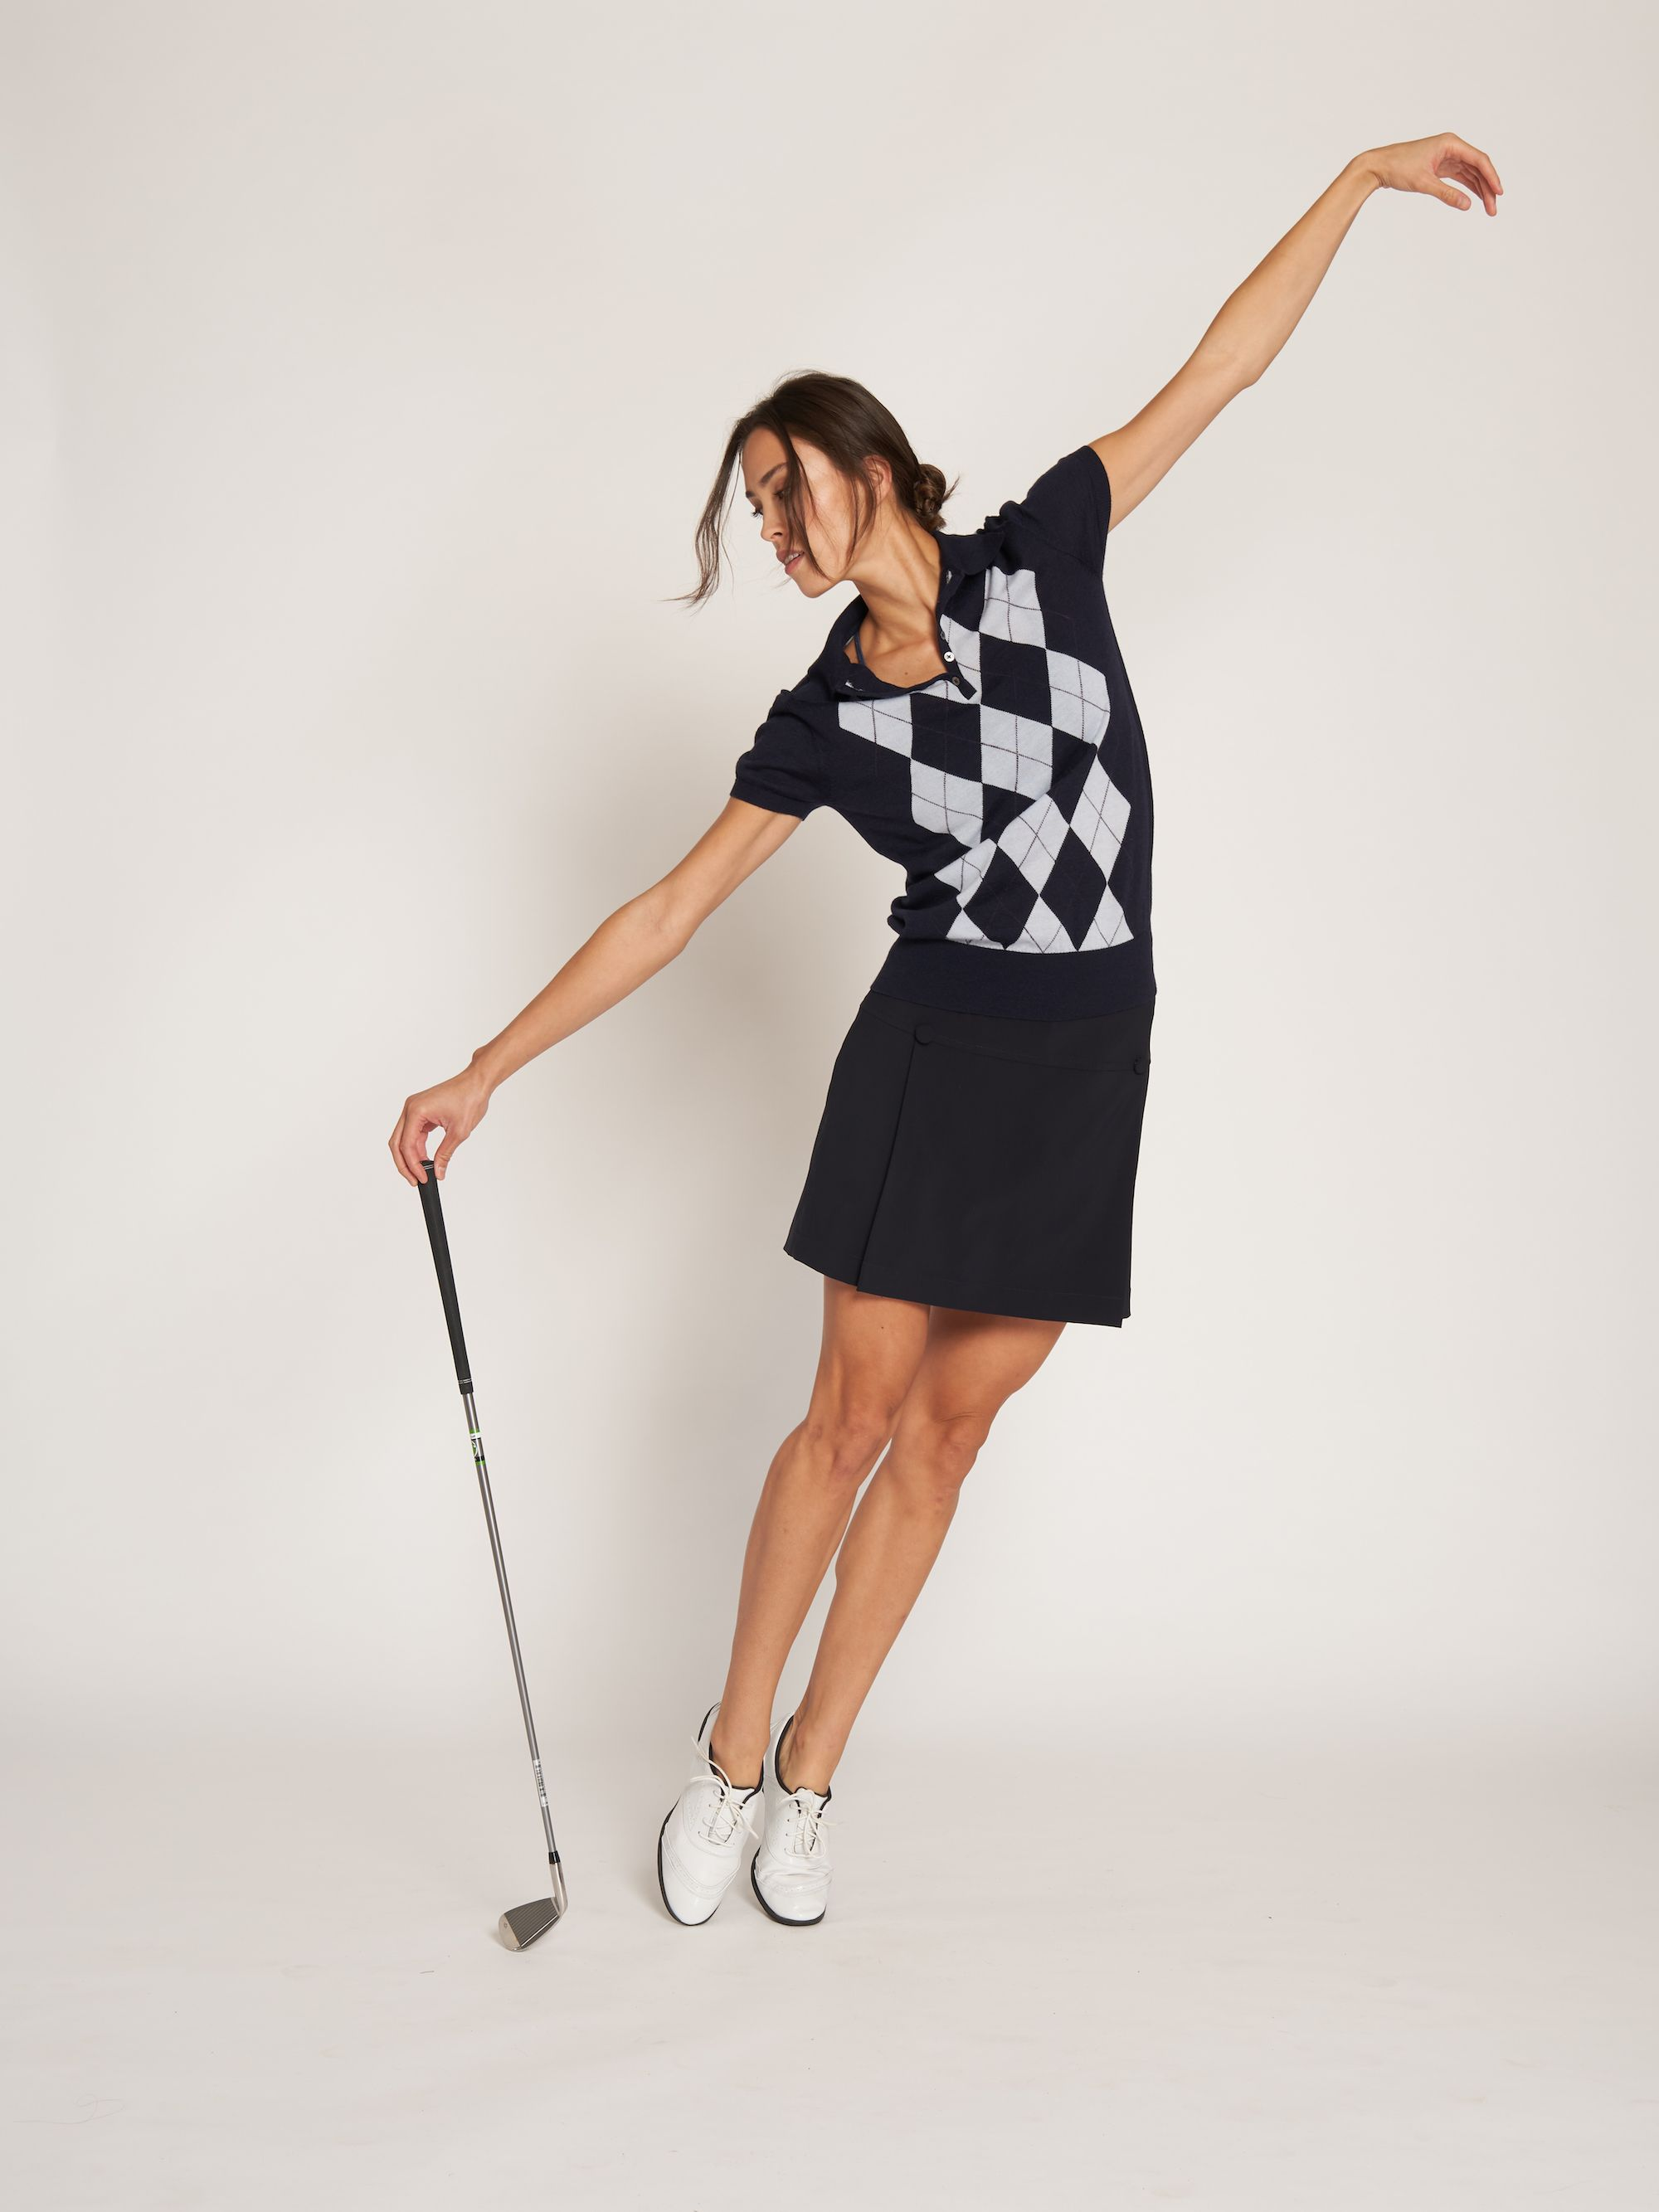 L Etoile Sport Gold Outfit The Argyle Polo And Golf Skort Golffashion Golfgirls Golfstyle Letoilesport Golf Outfits Women Tennis Clothes Golf Outfit